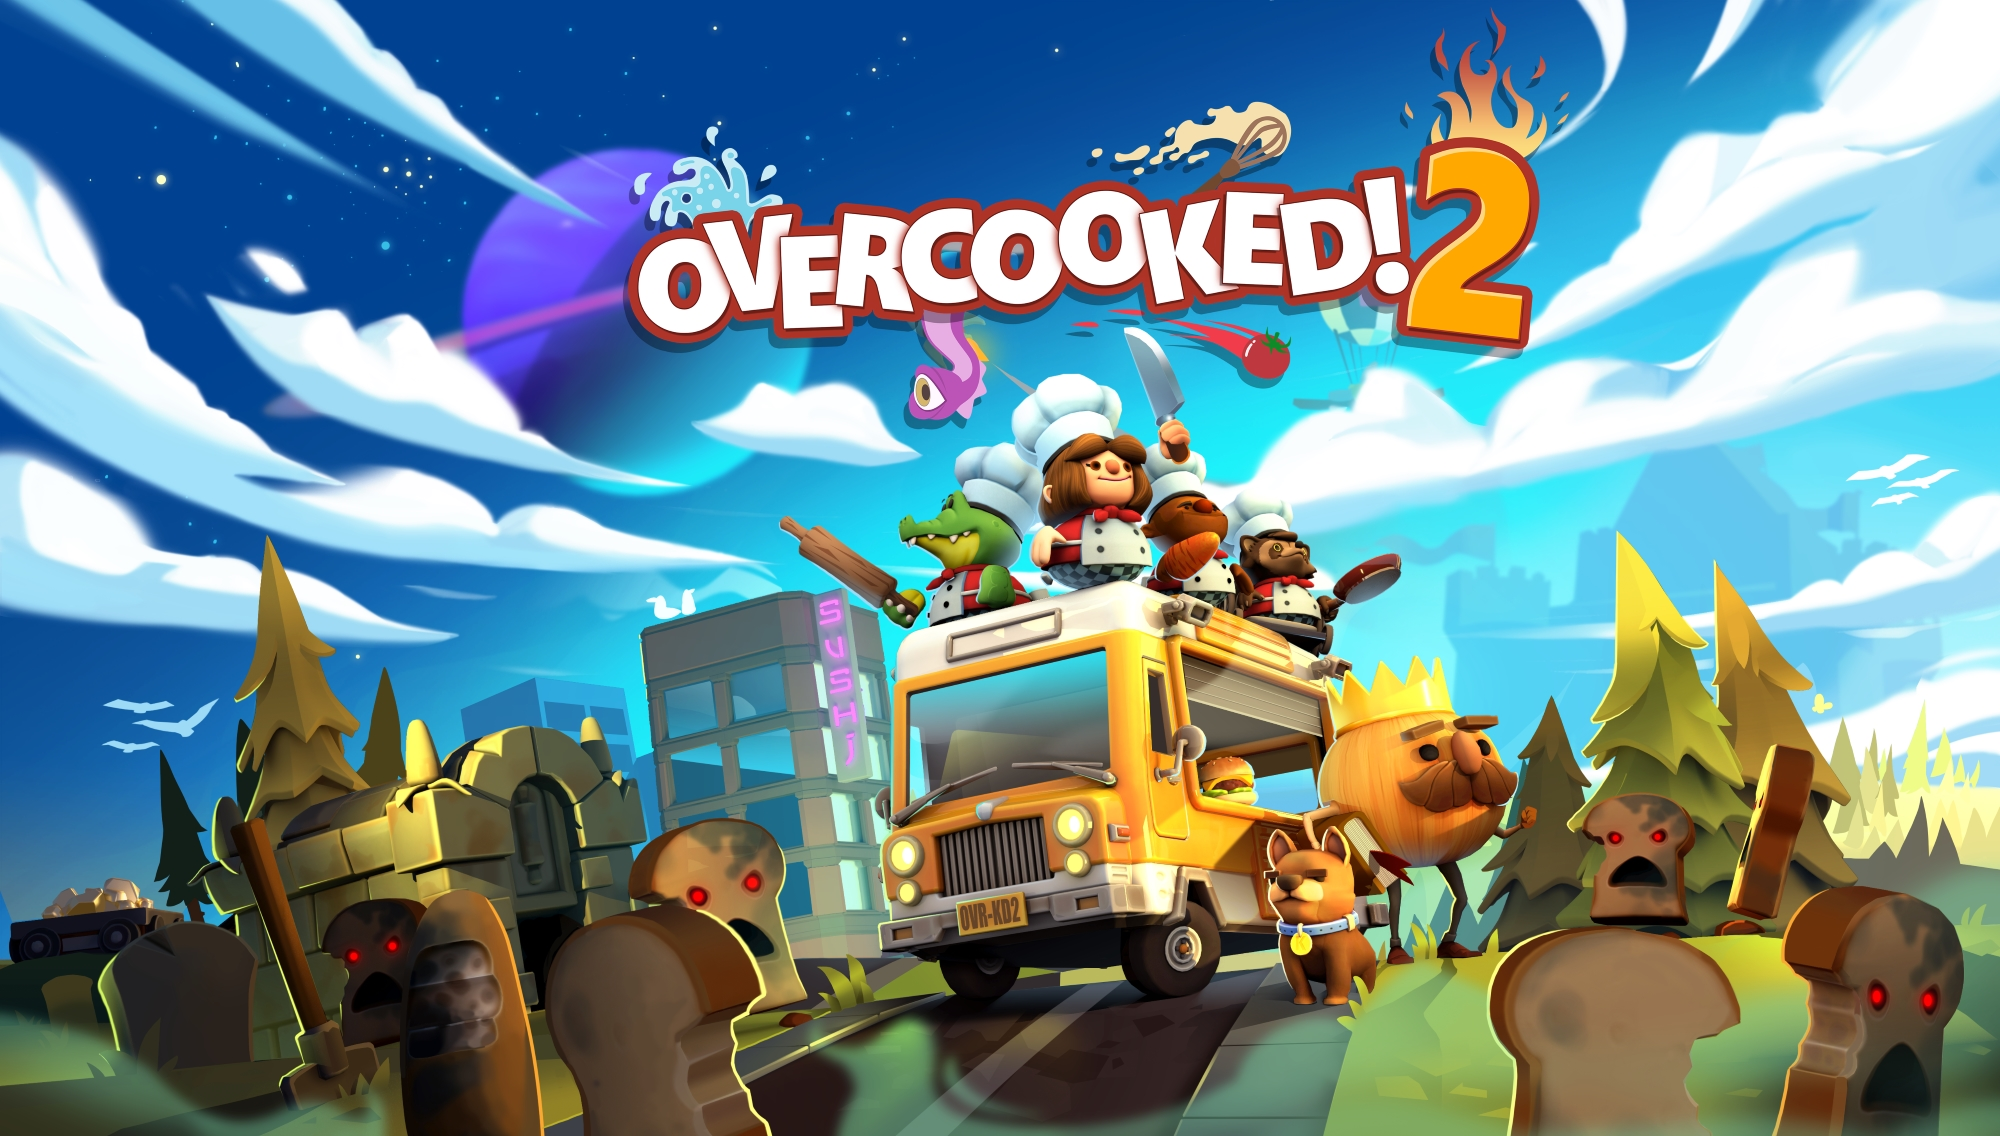 Overcooked 2 hands-on preview – too many cooks improve the fun